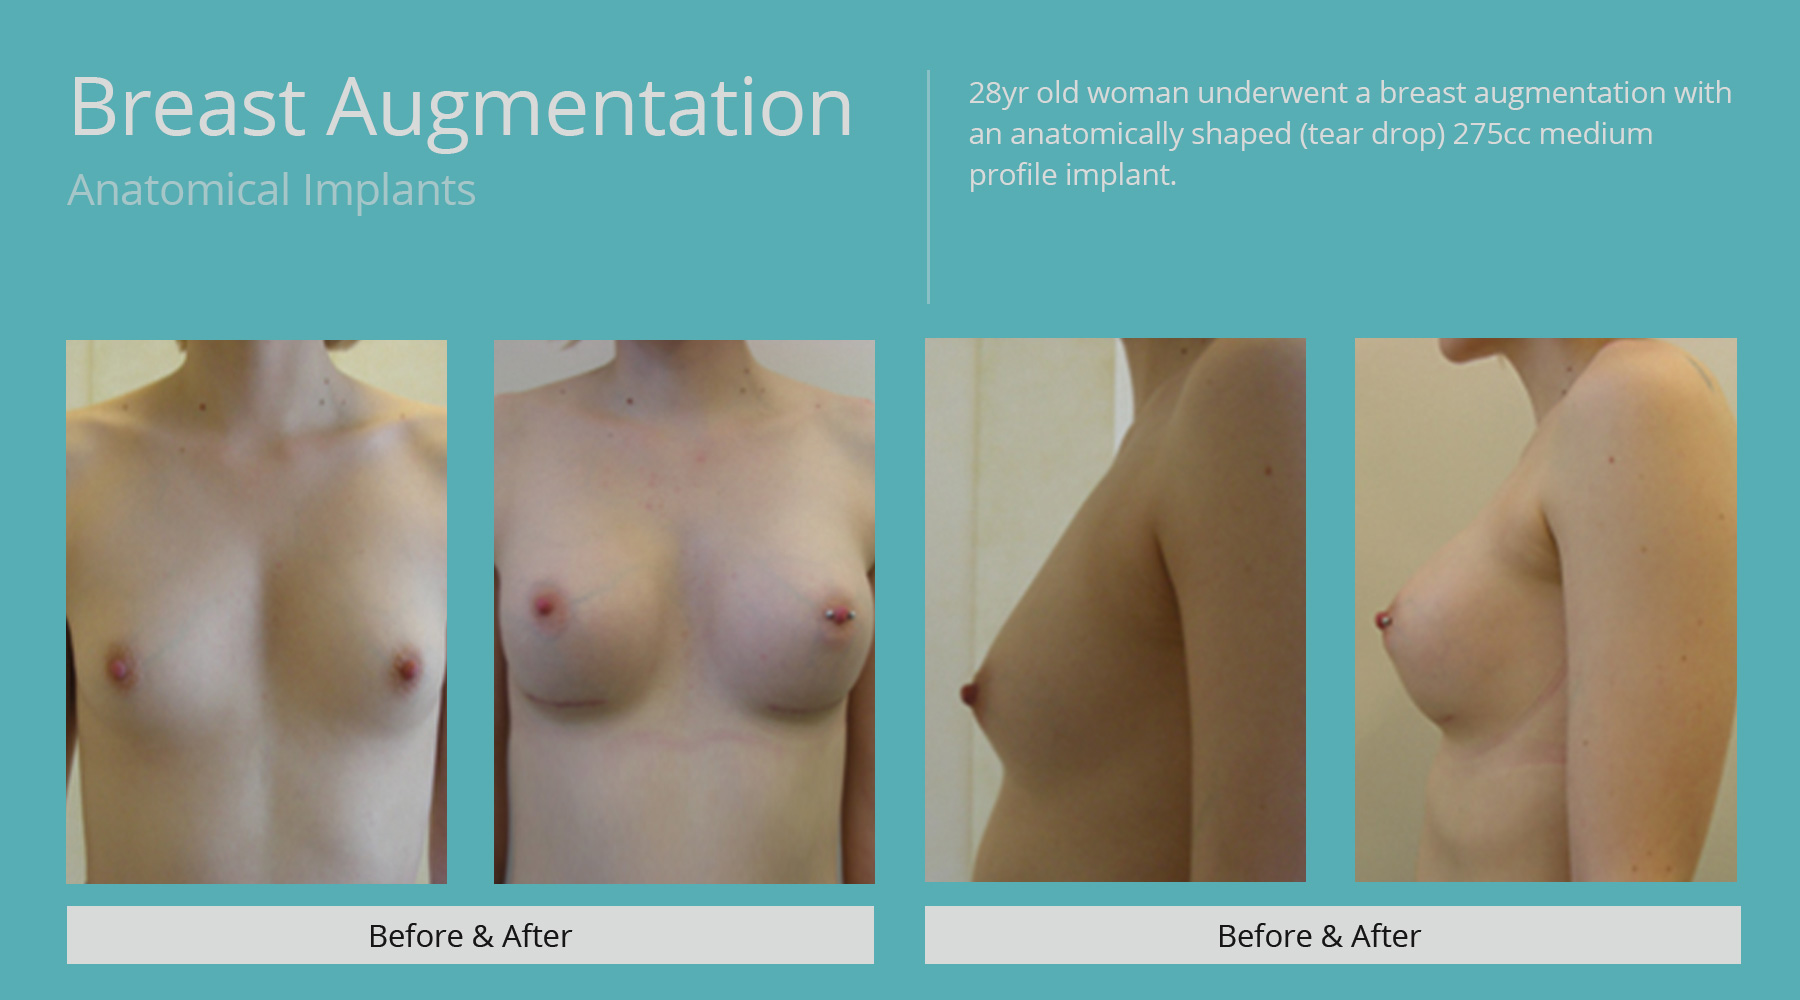 Breast-Augmentation-anatomical-12